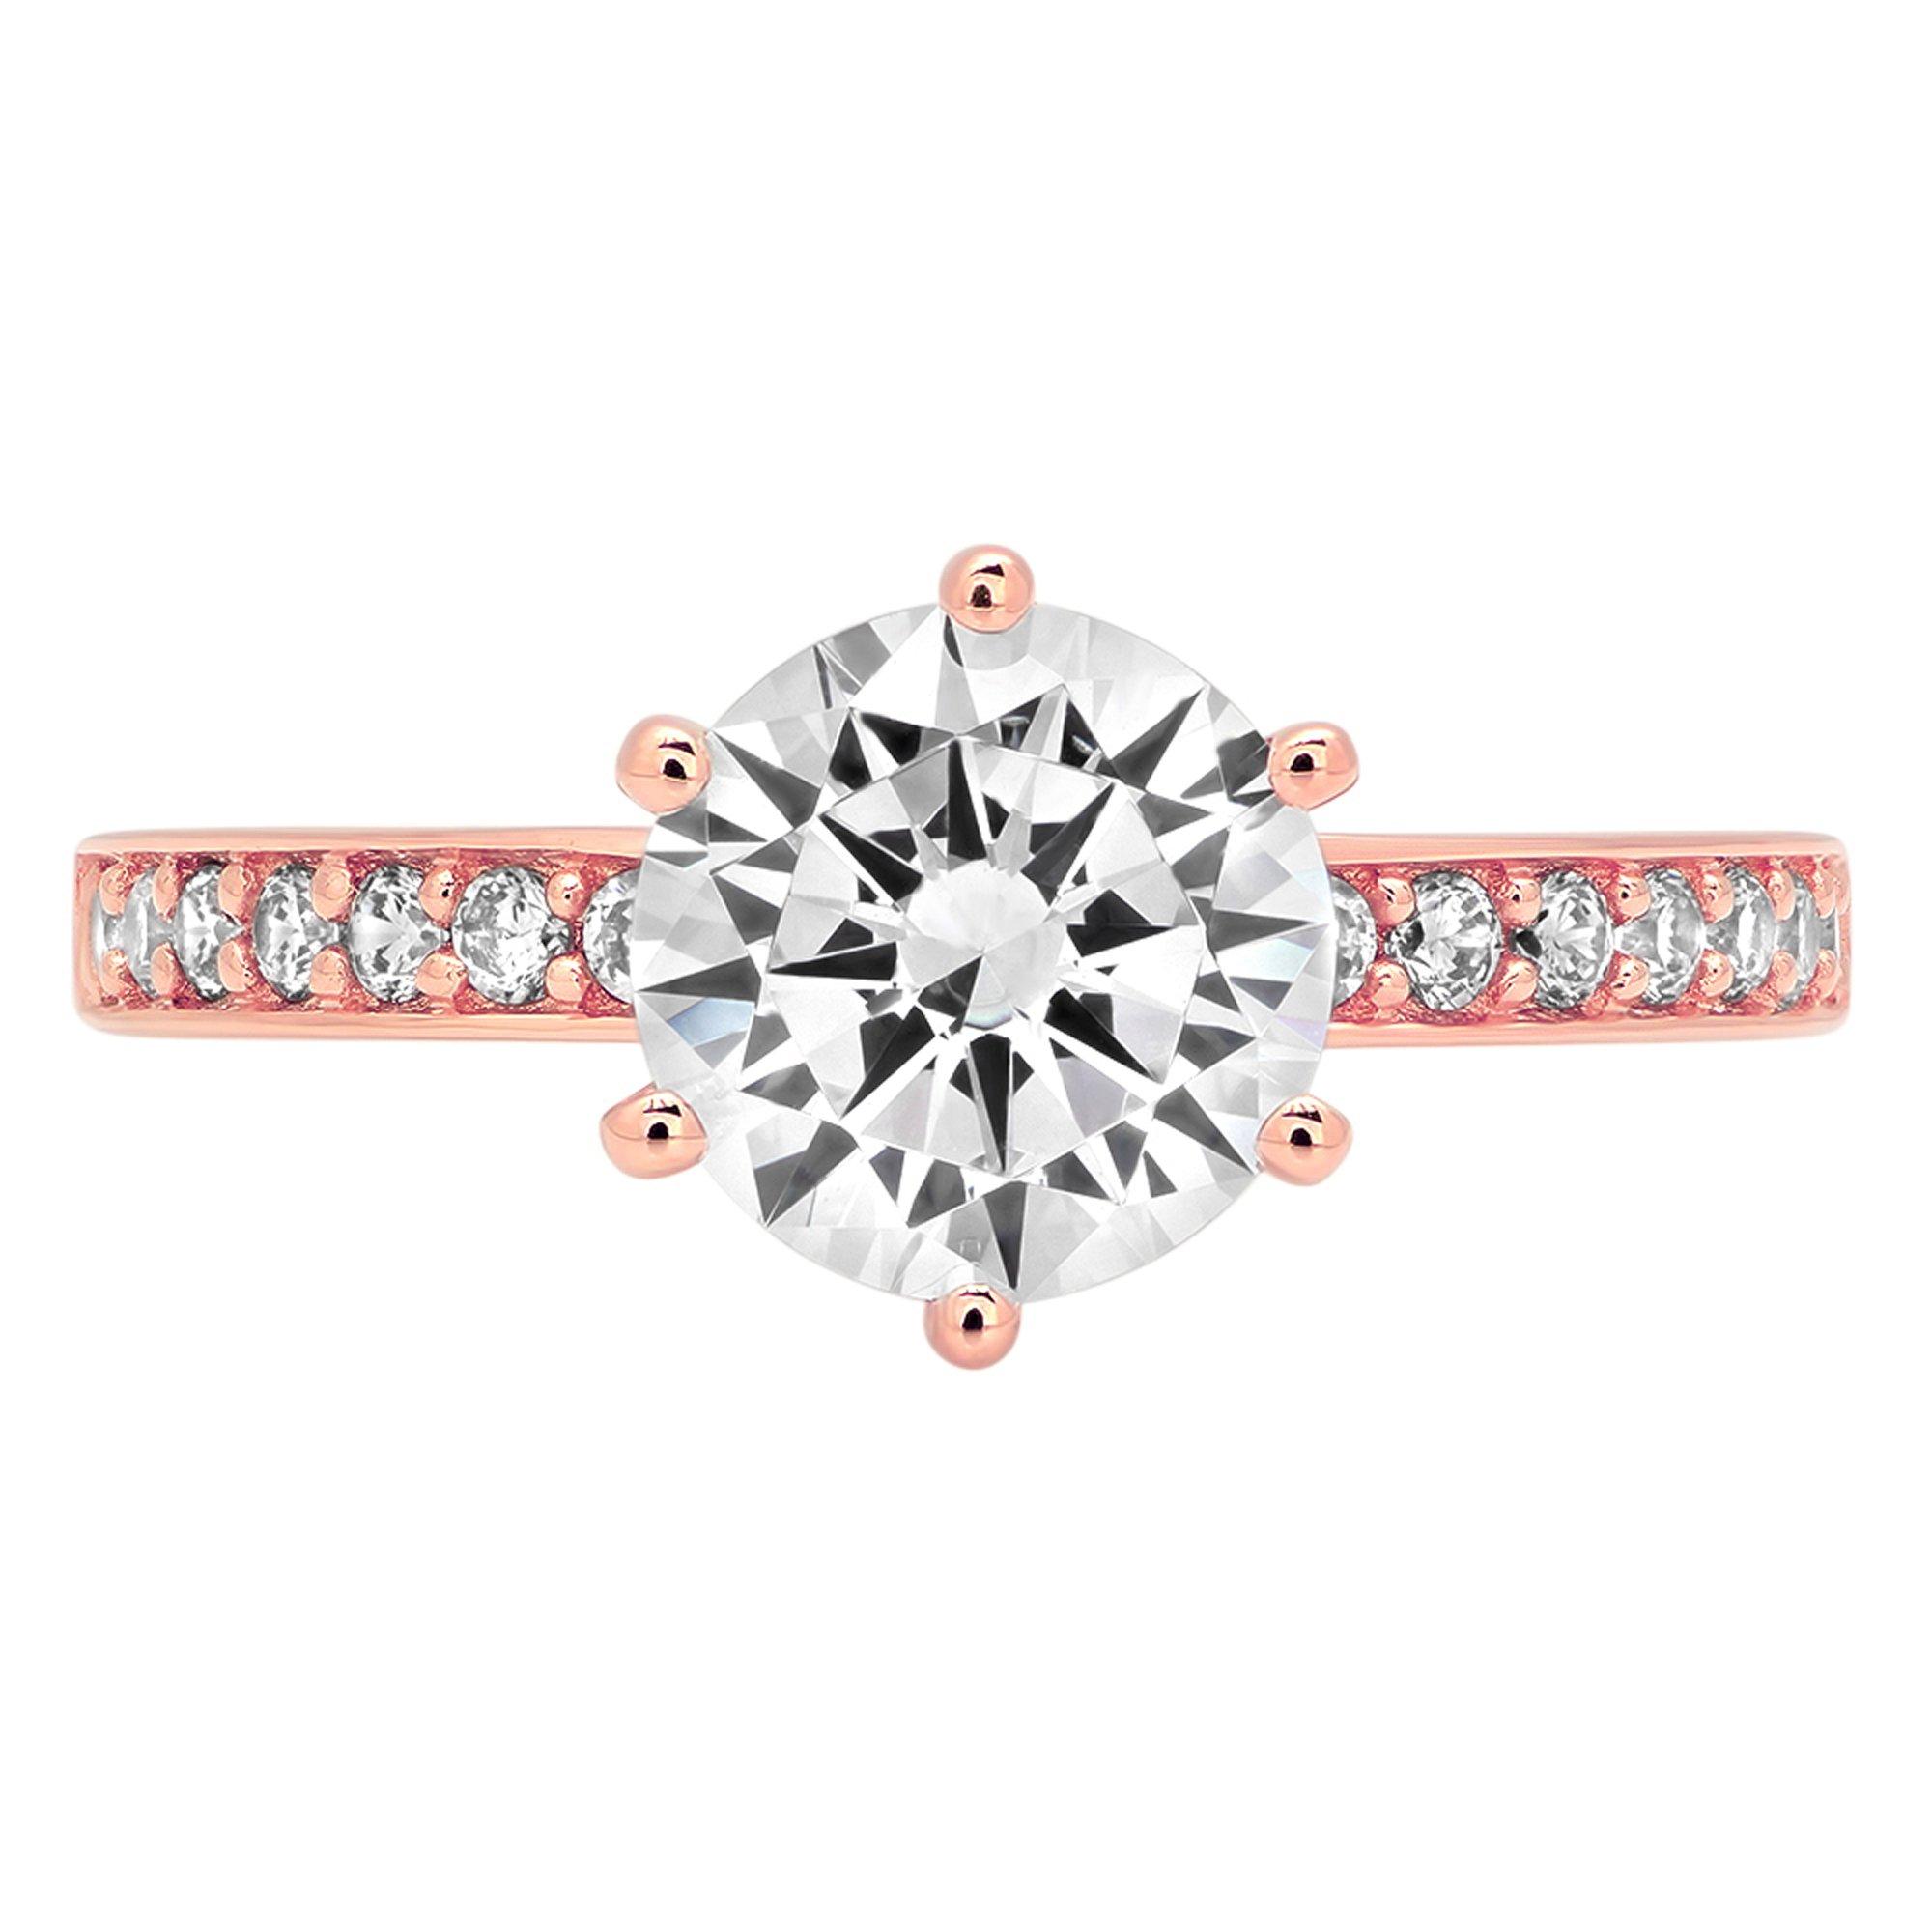 1.76ct Brilliant Round Cut Designer Accent Solitaire Promise Anniversary Statement Engagement Wedding Bridal Ring For Women Solid 14k Rose Gold, 6.25